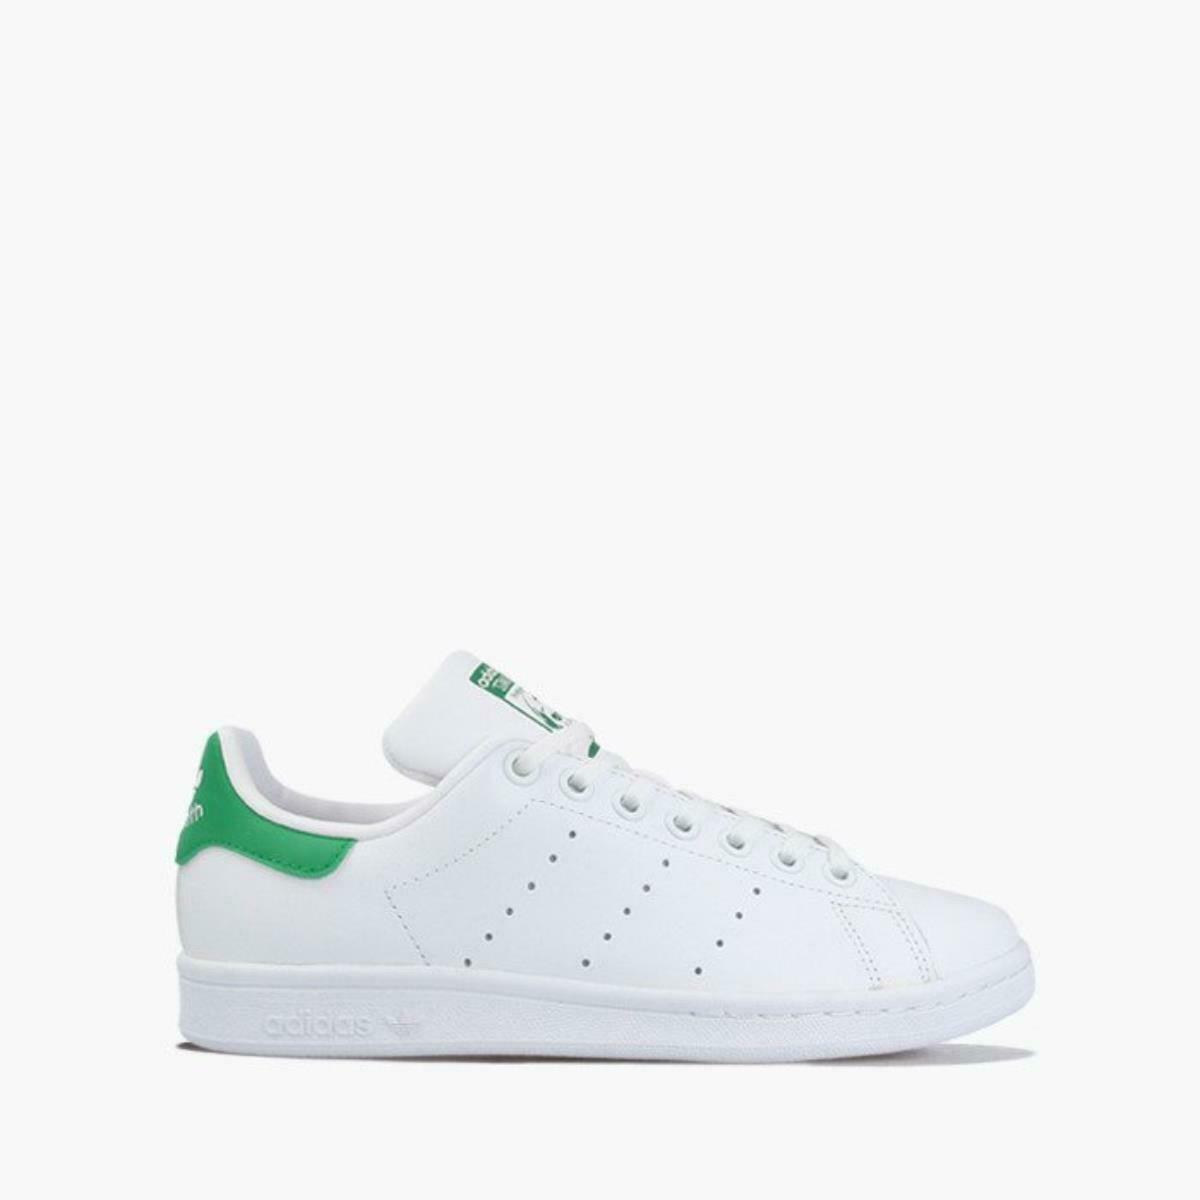 scarpe ADIDAS originals STAN SMITH M20605 StanSmith bianco verde DONNA SNEAKERS